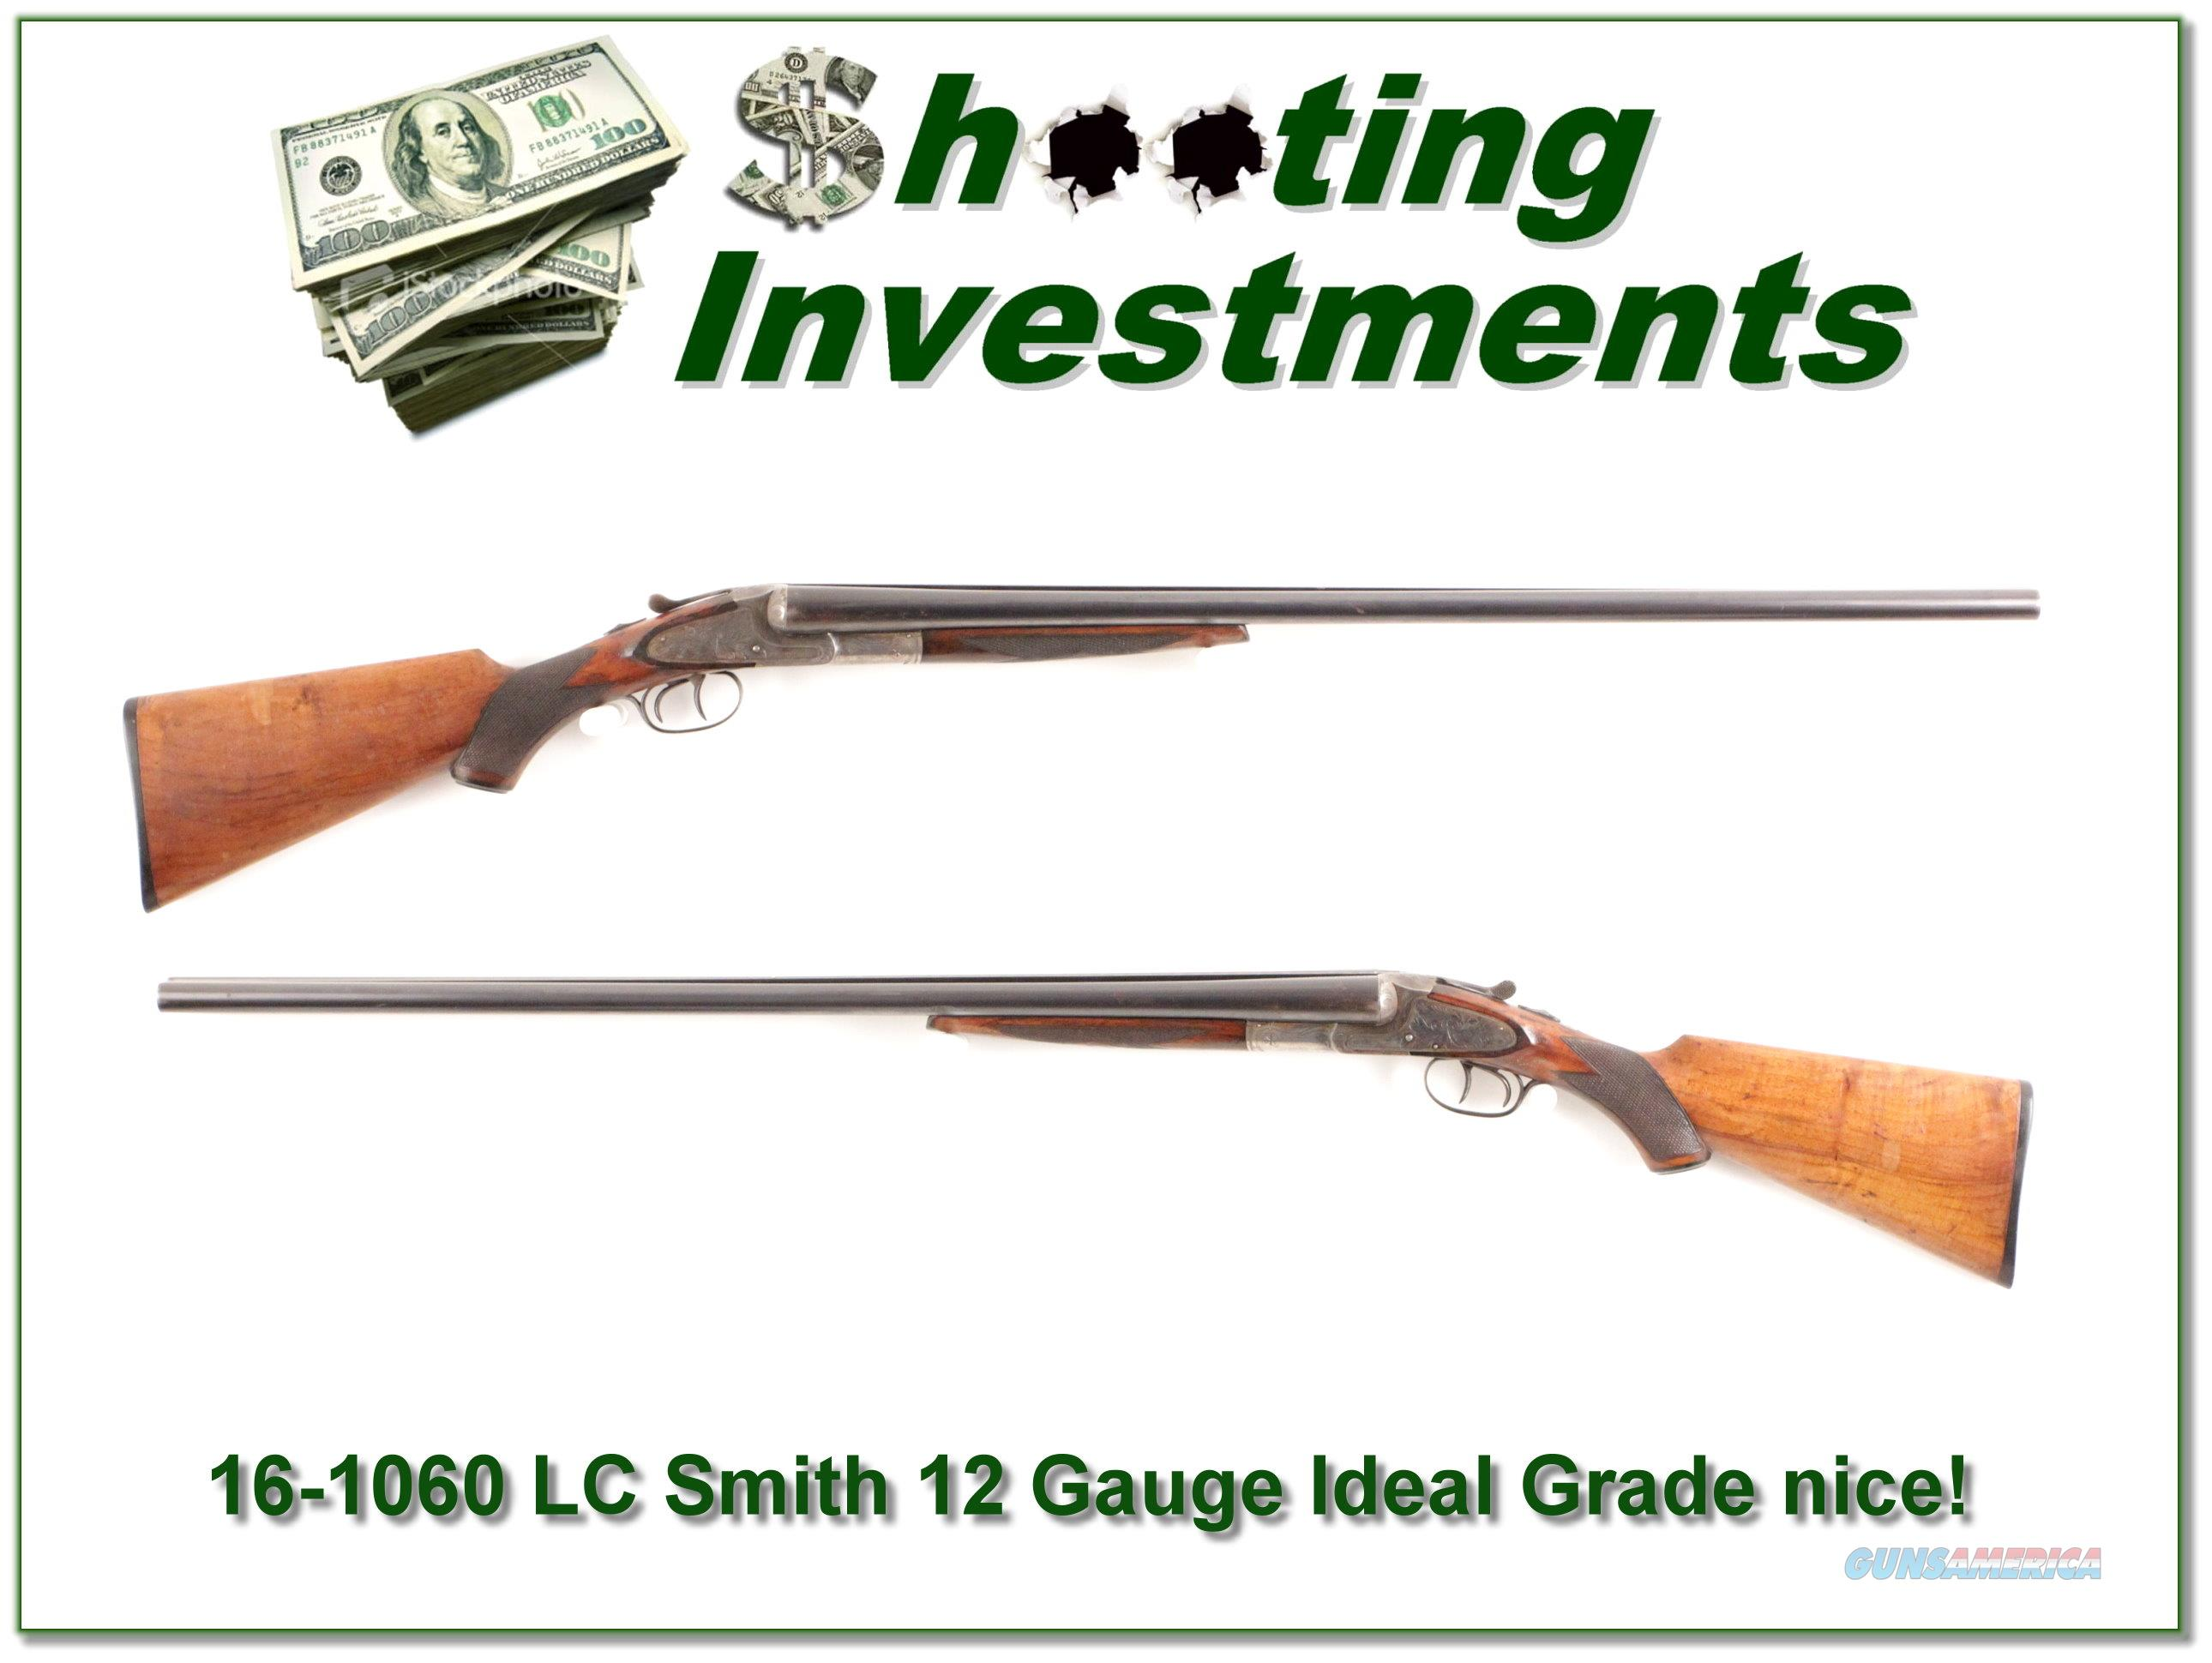 LC Smith Ideal Grade 12 Gauge 30in very nice!  Guns > Shotguns > L.C. Smith Shotguns